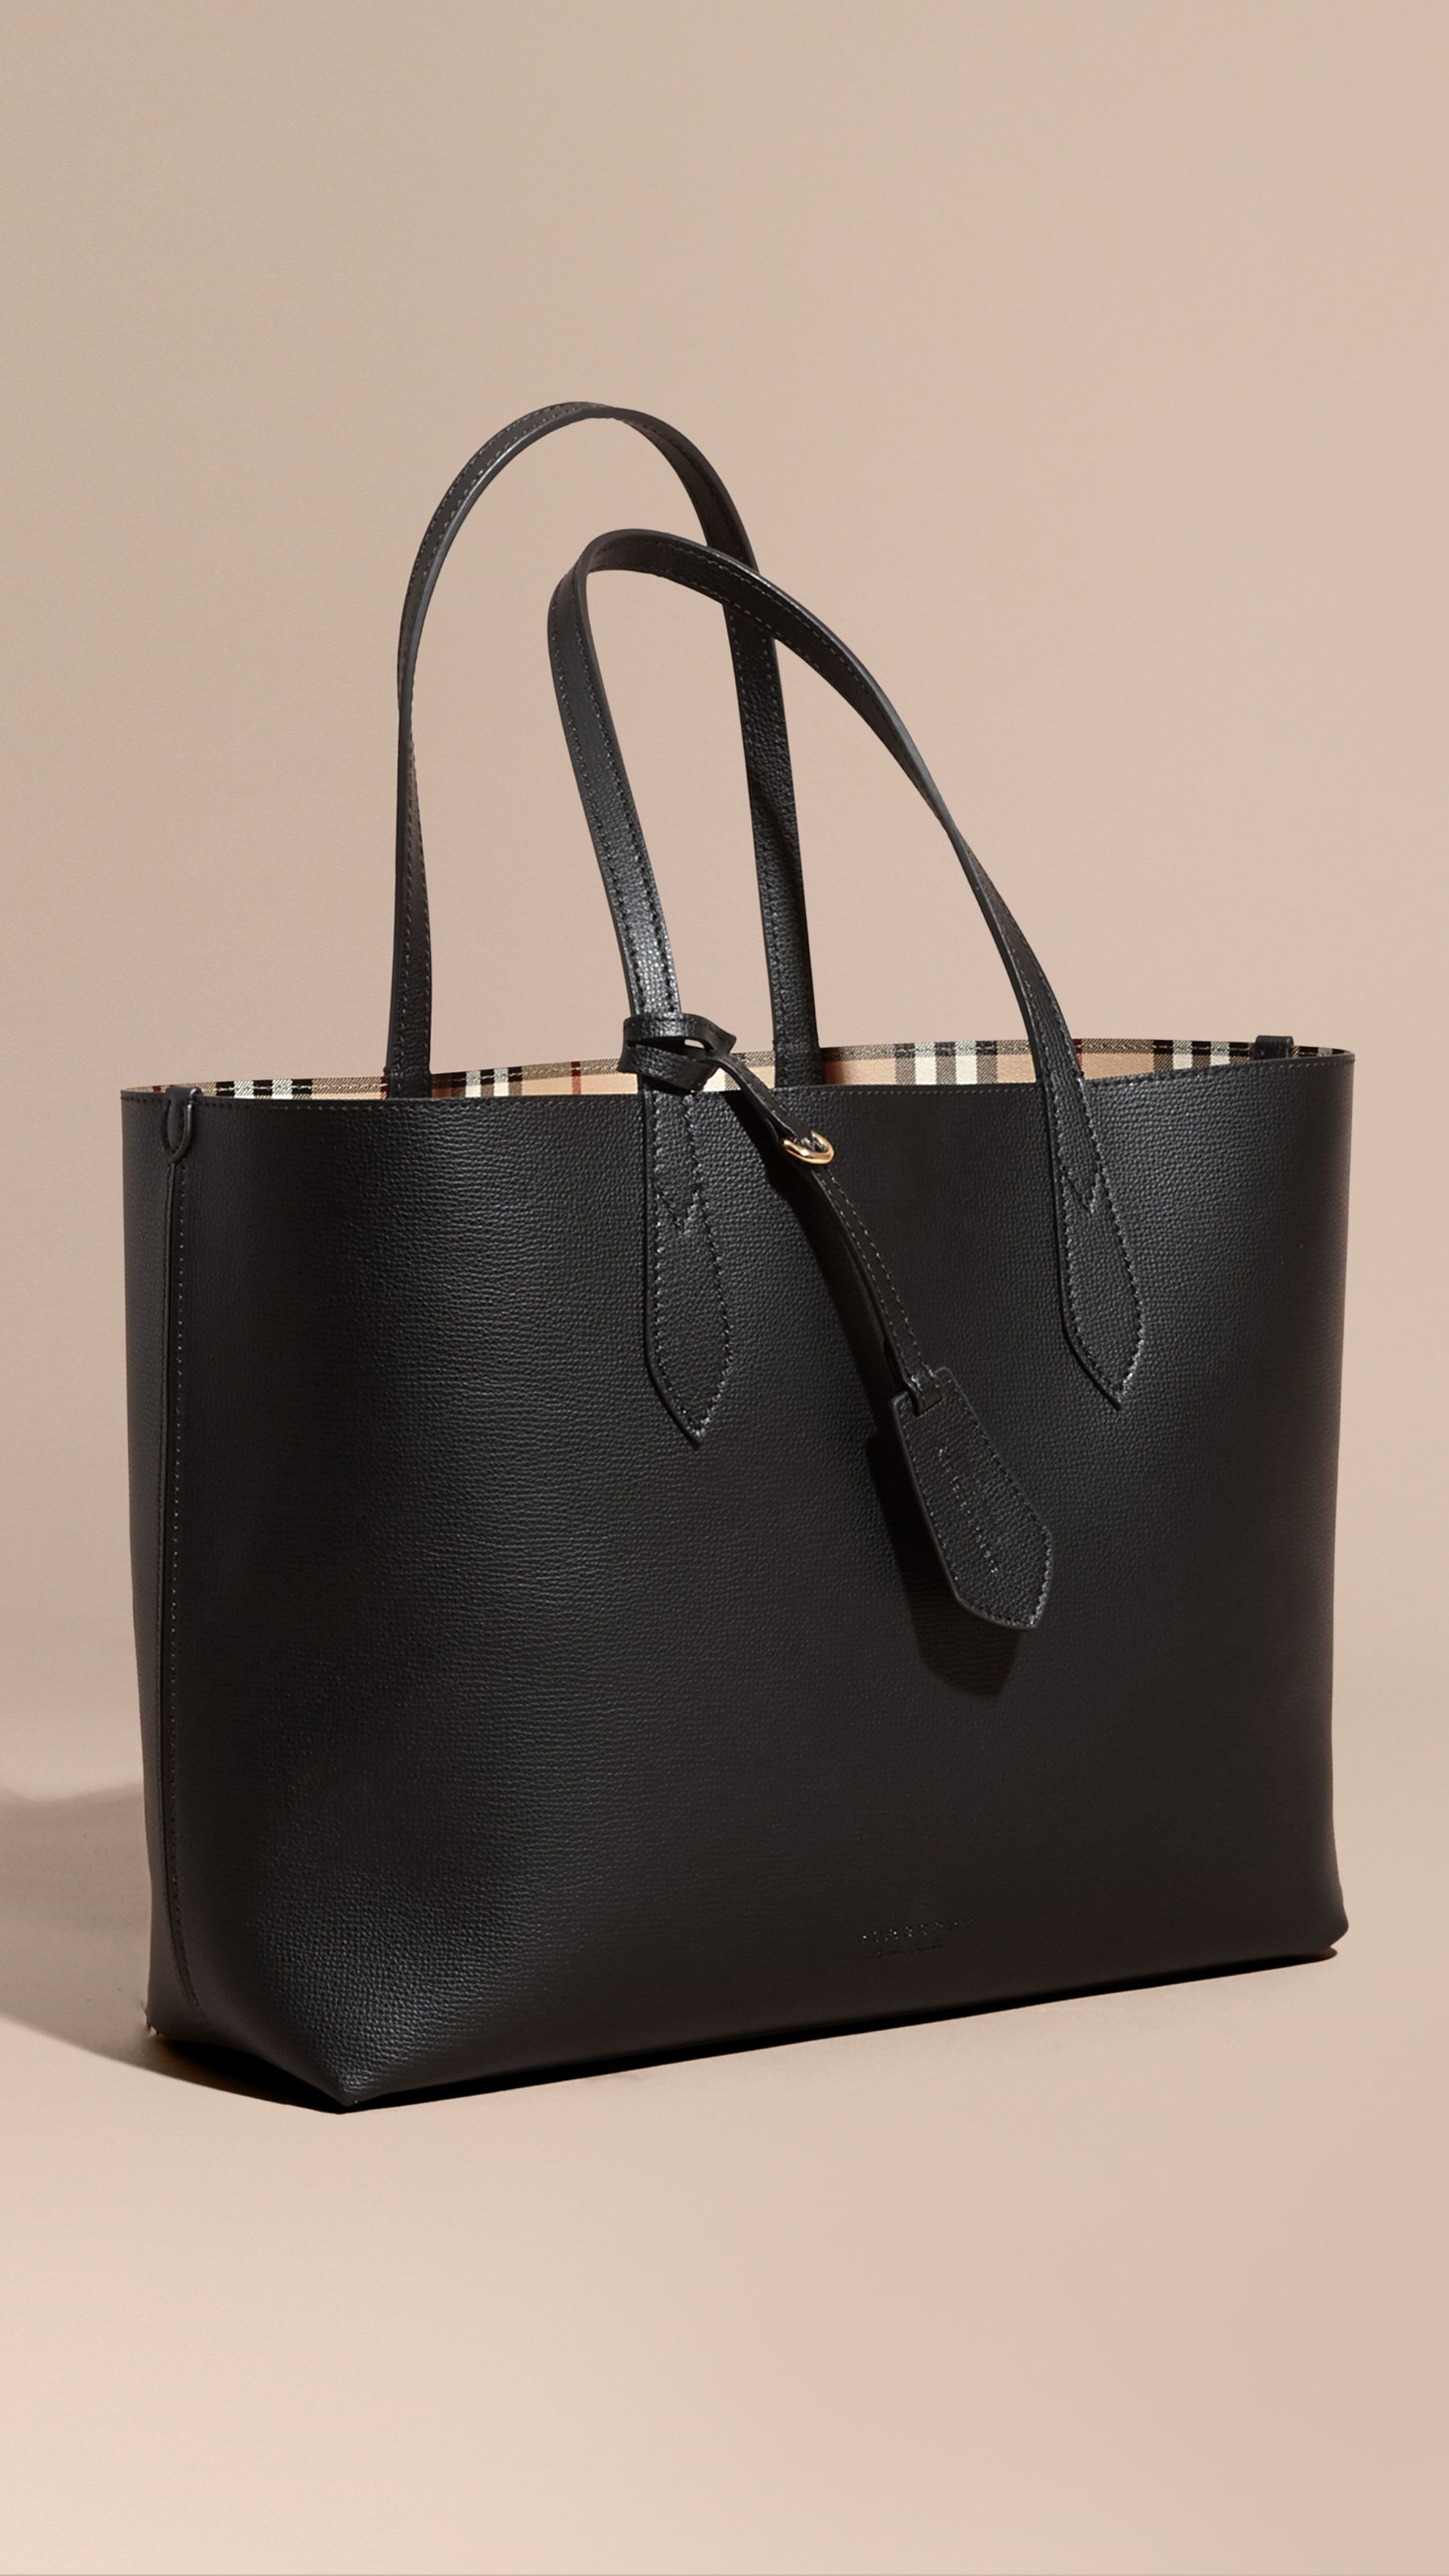 ffa14bf123da The Medium Reversible Tote in Haymarket Check and Leather Black